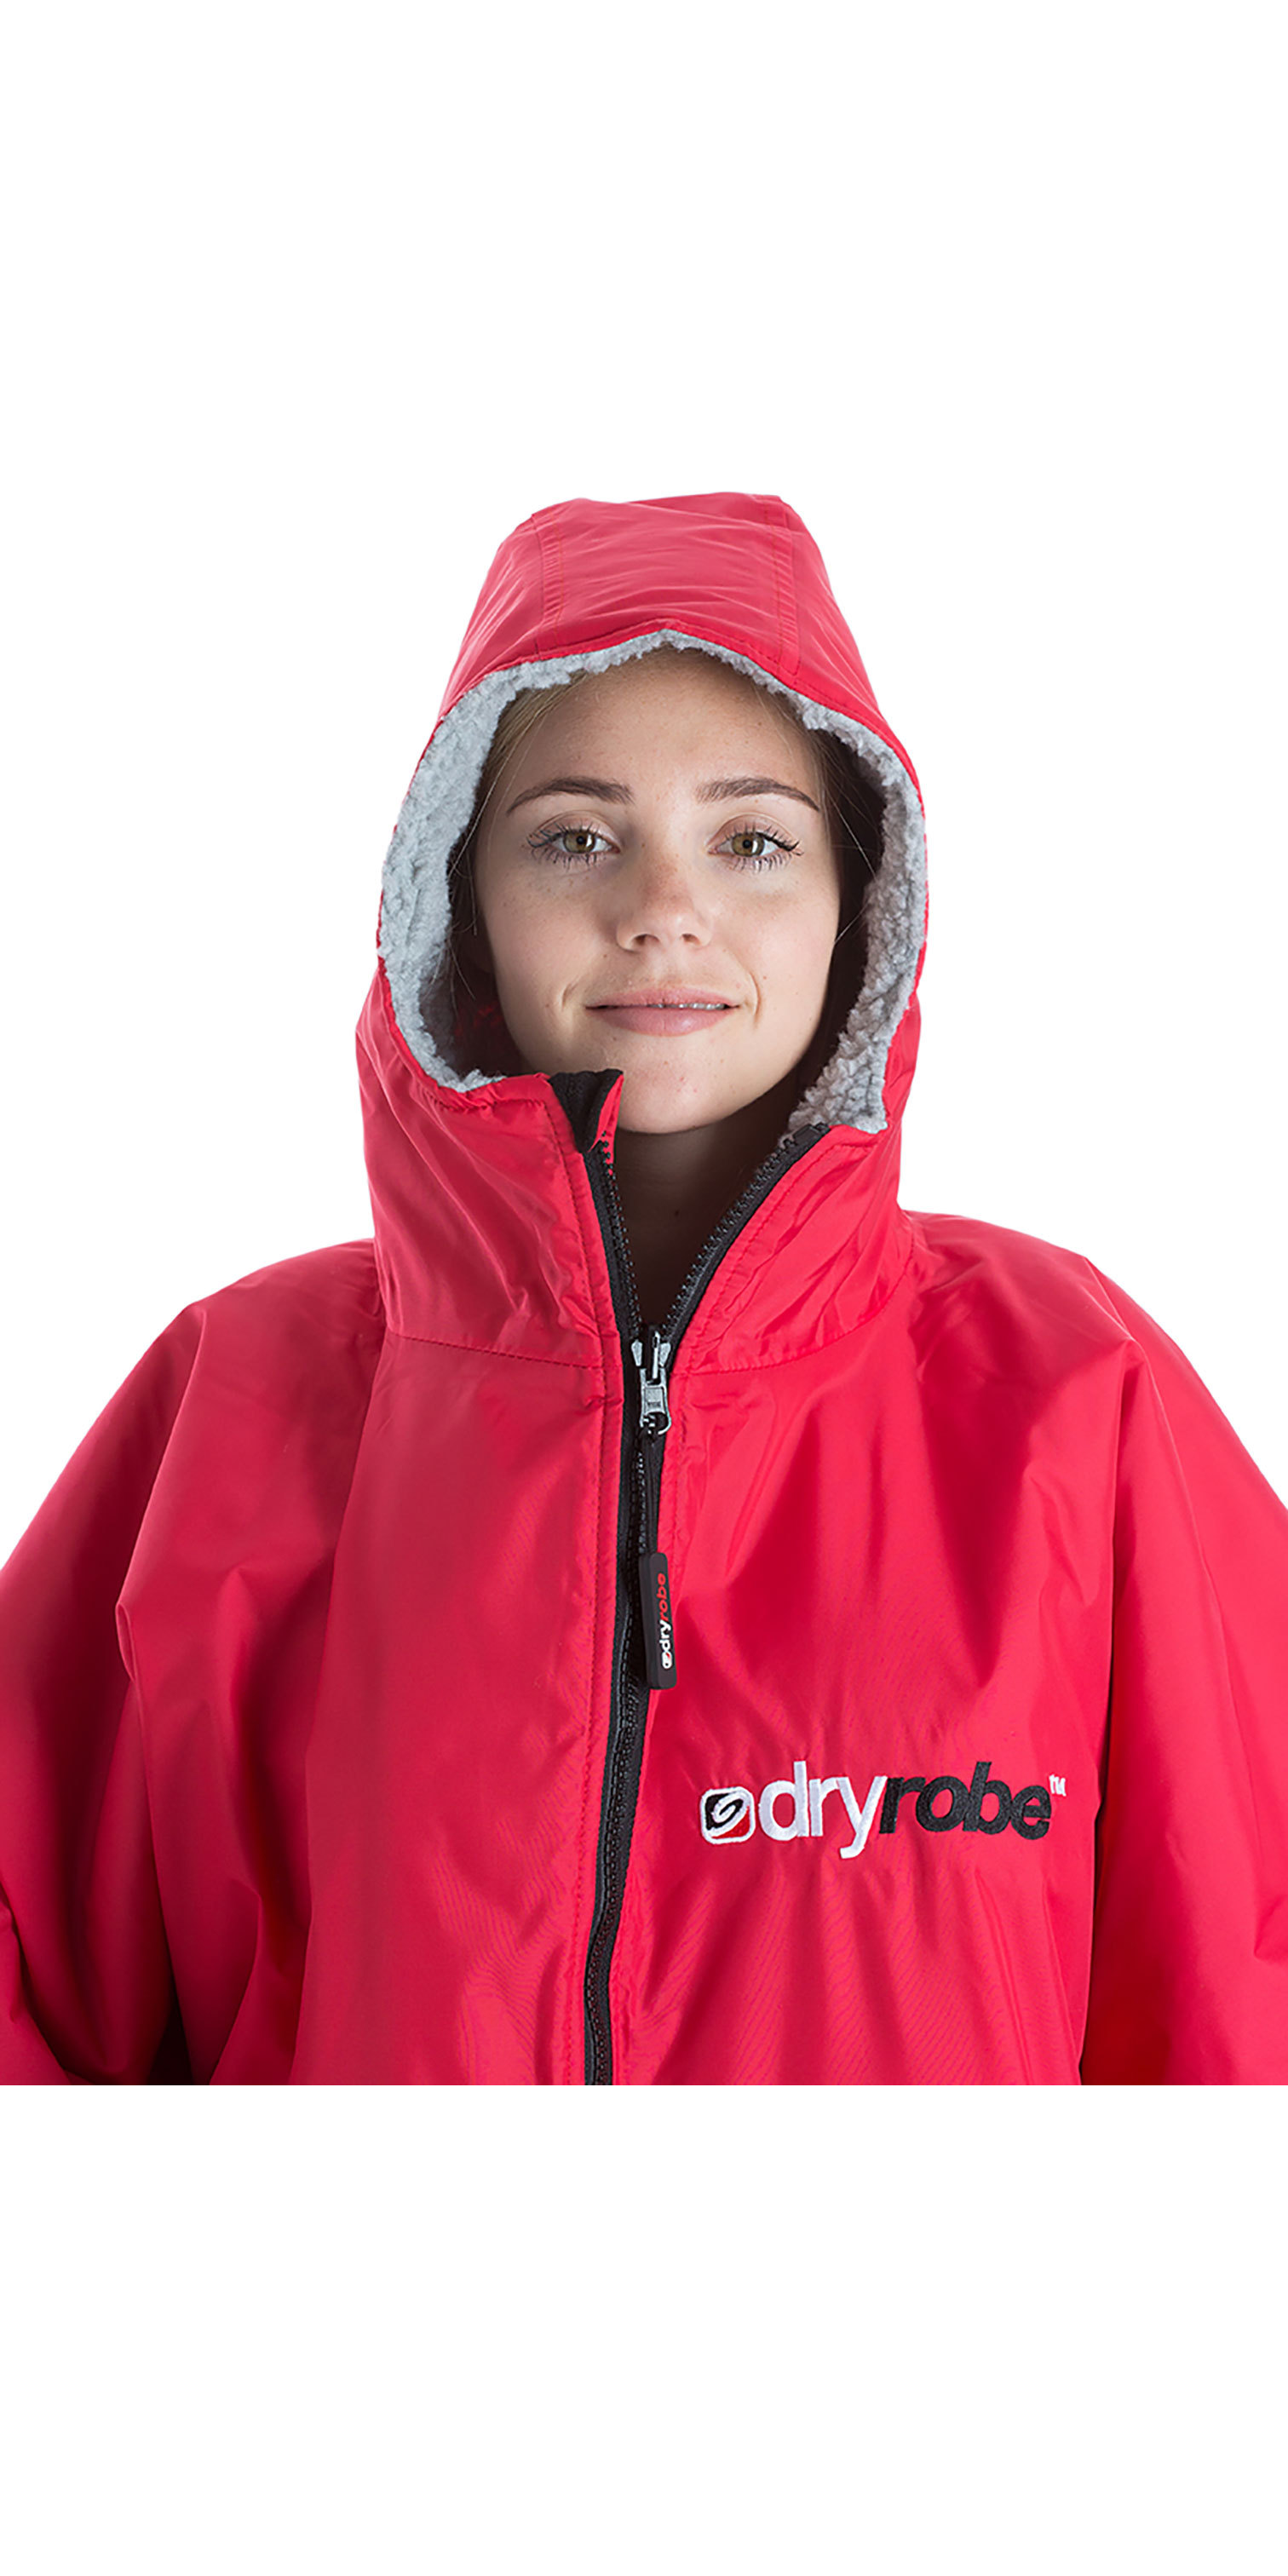 2019 Dryrobe Advance Short Sleeve Premium Outdoor Change Robe / Poncho DR100 Red / Grey